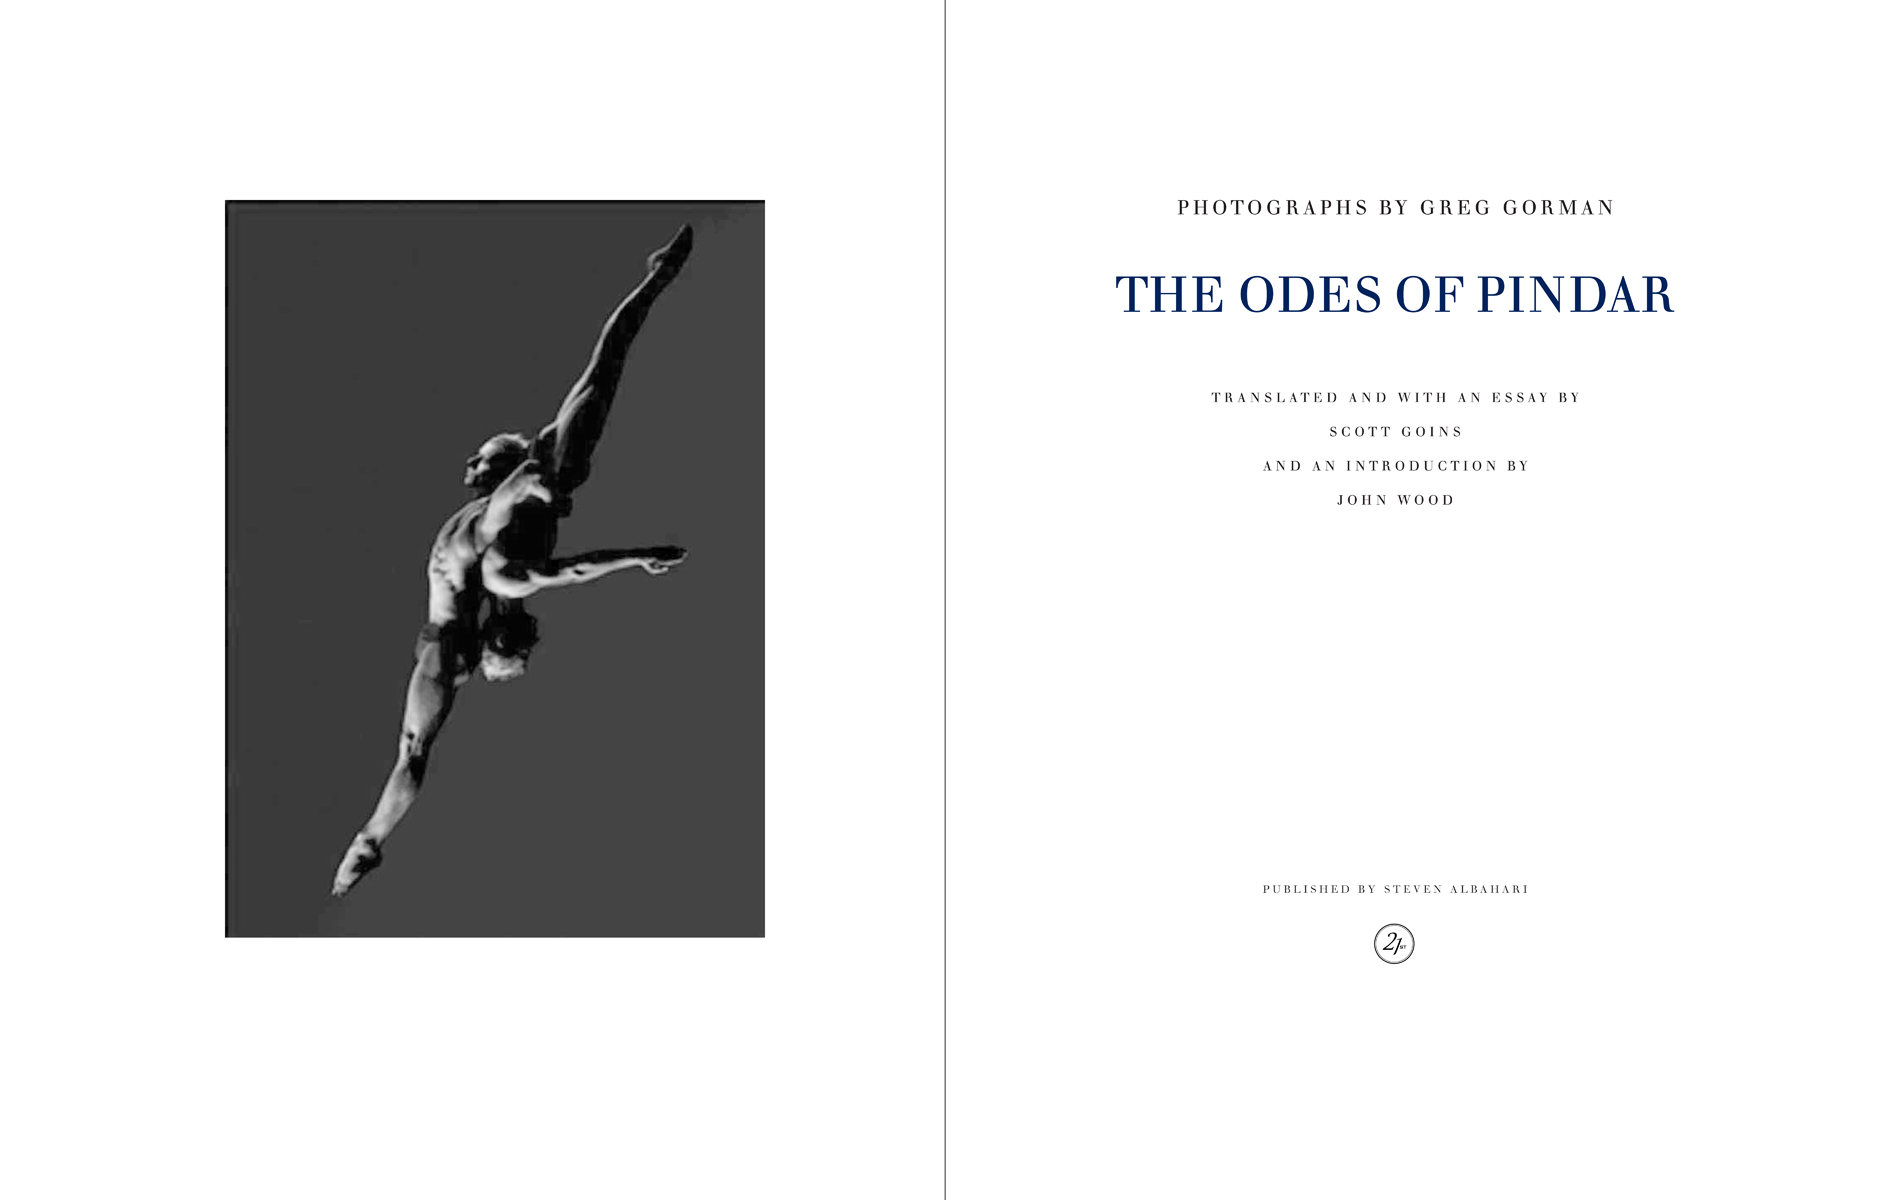 The Odes of Pindar, Greg Gorman